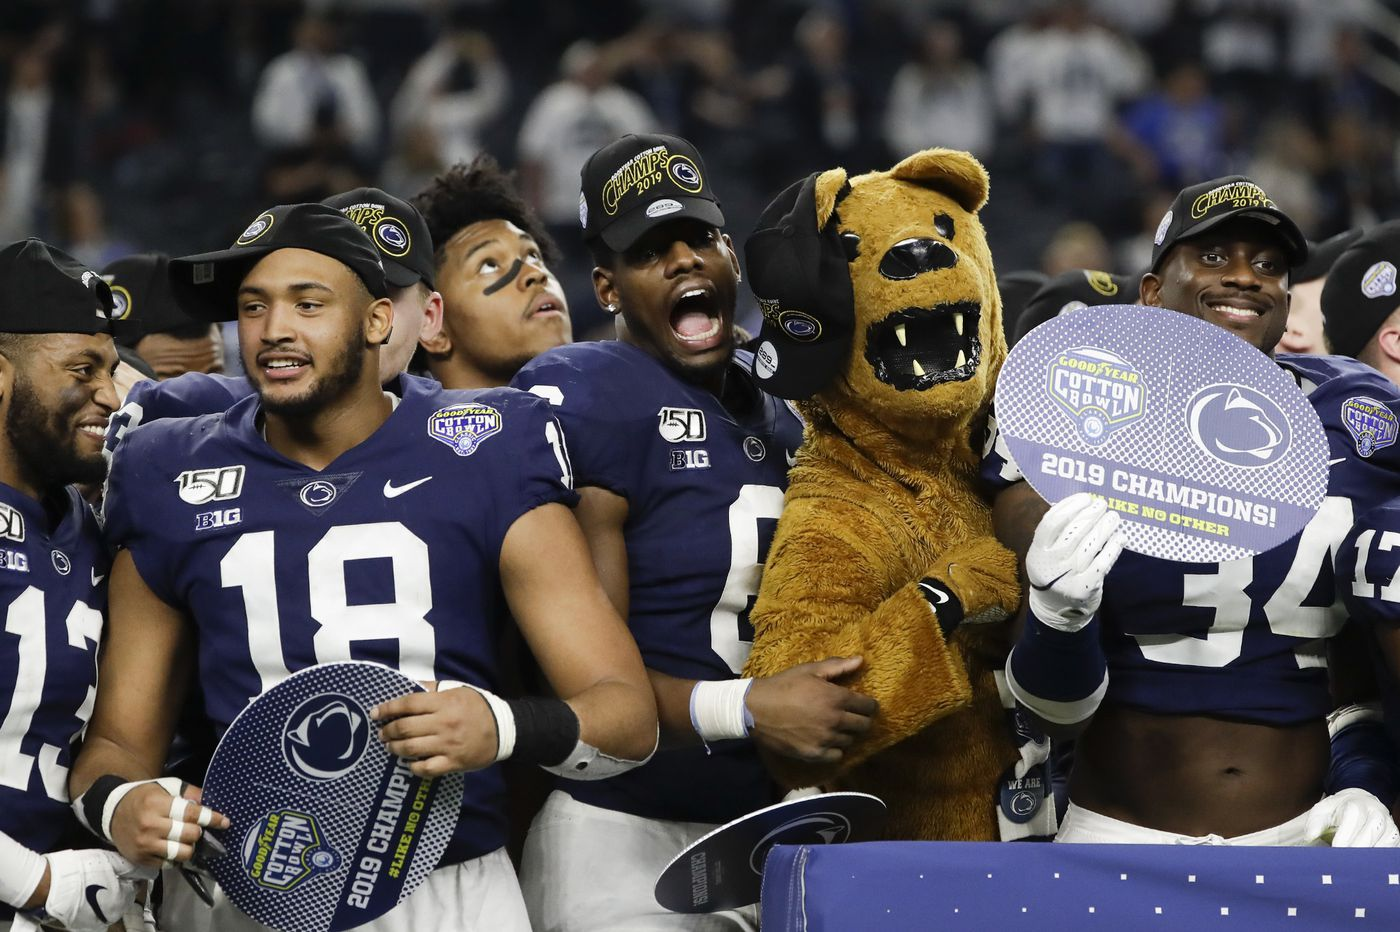 Penn State's 2019 season exceeded expectations; now the work starts on 2020